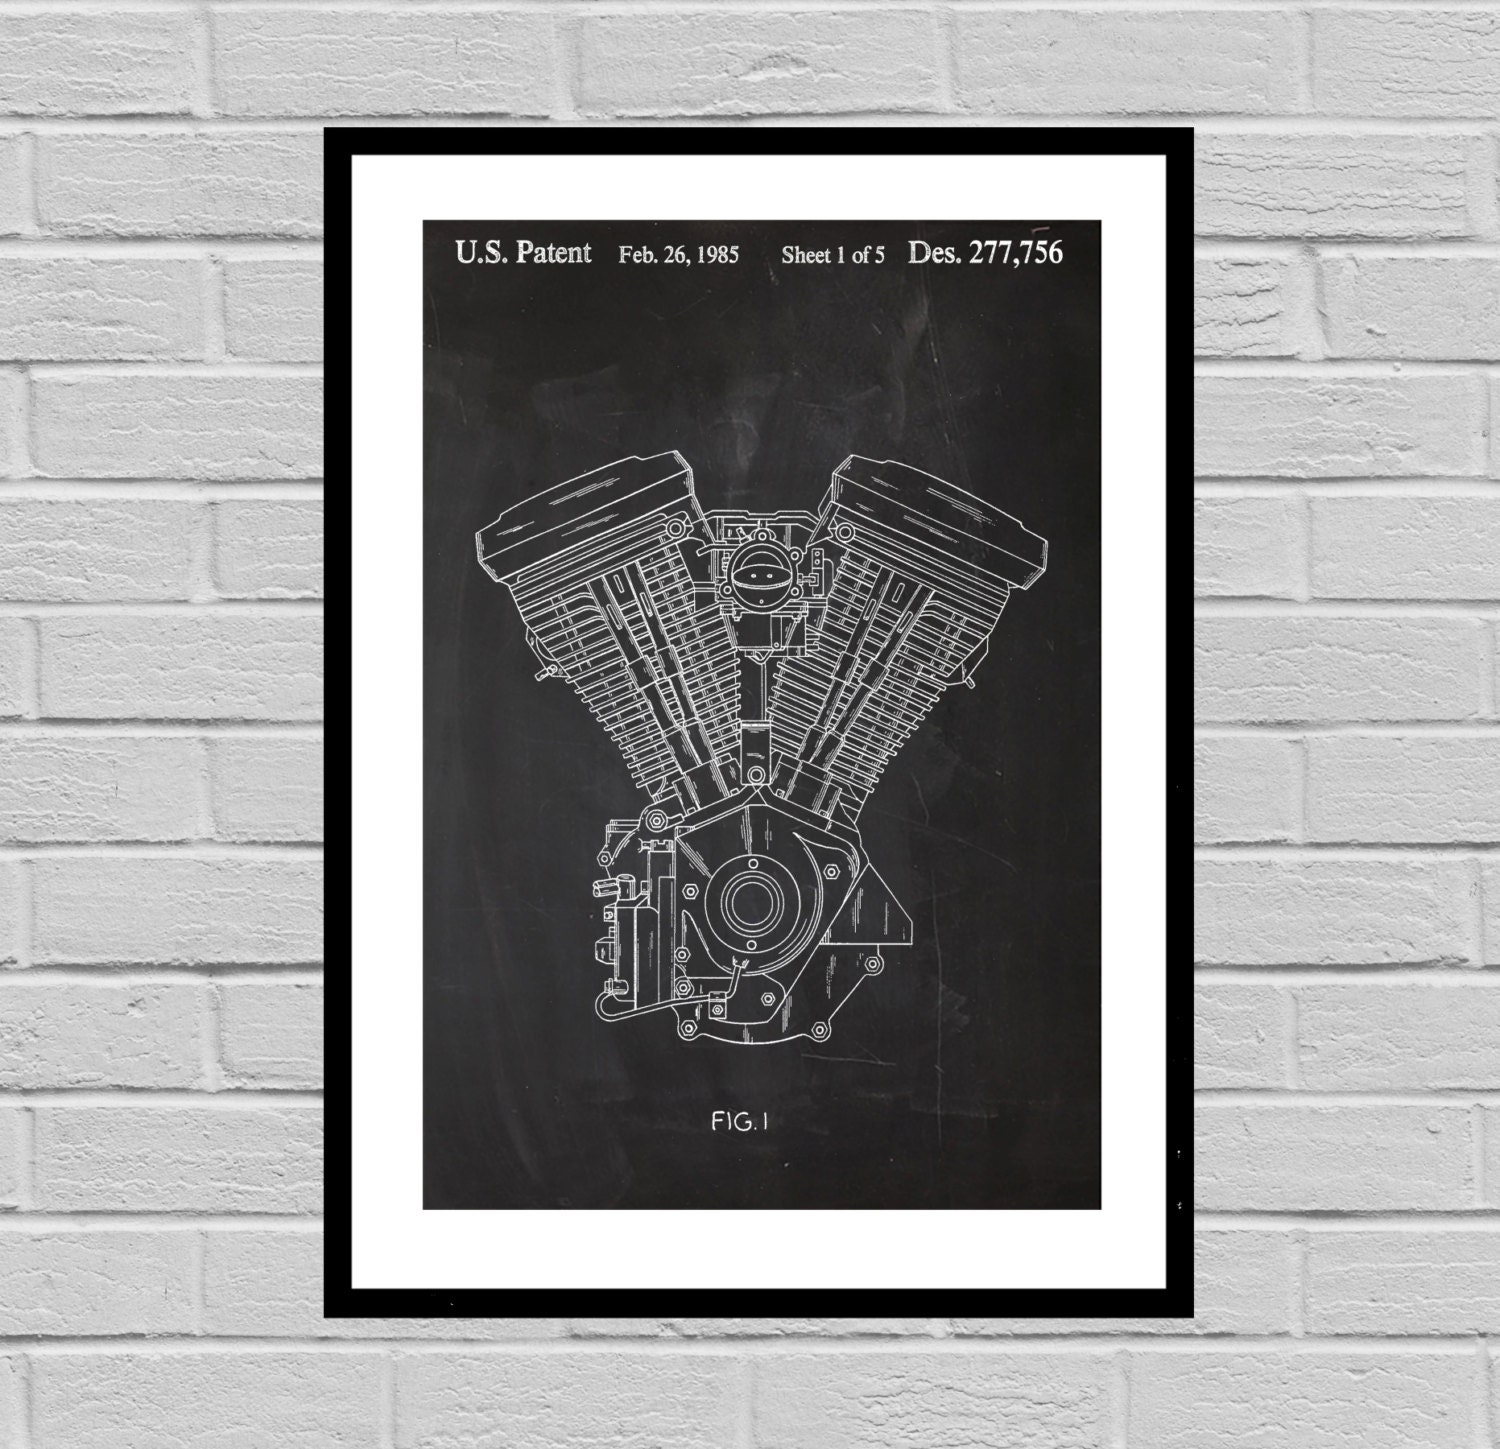 Harley davidson motorcycle blueprint patent poster wall art harley davidson motorcycle blueprint patent poster wall art poster harley motorcycle print wall art poster patentprints harley art malvernweather Choice Image